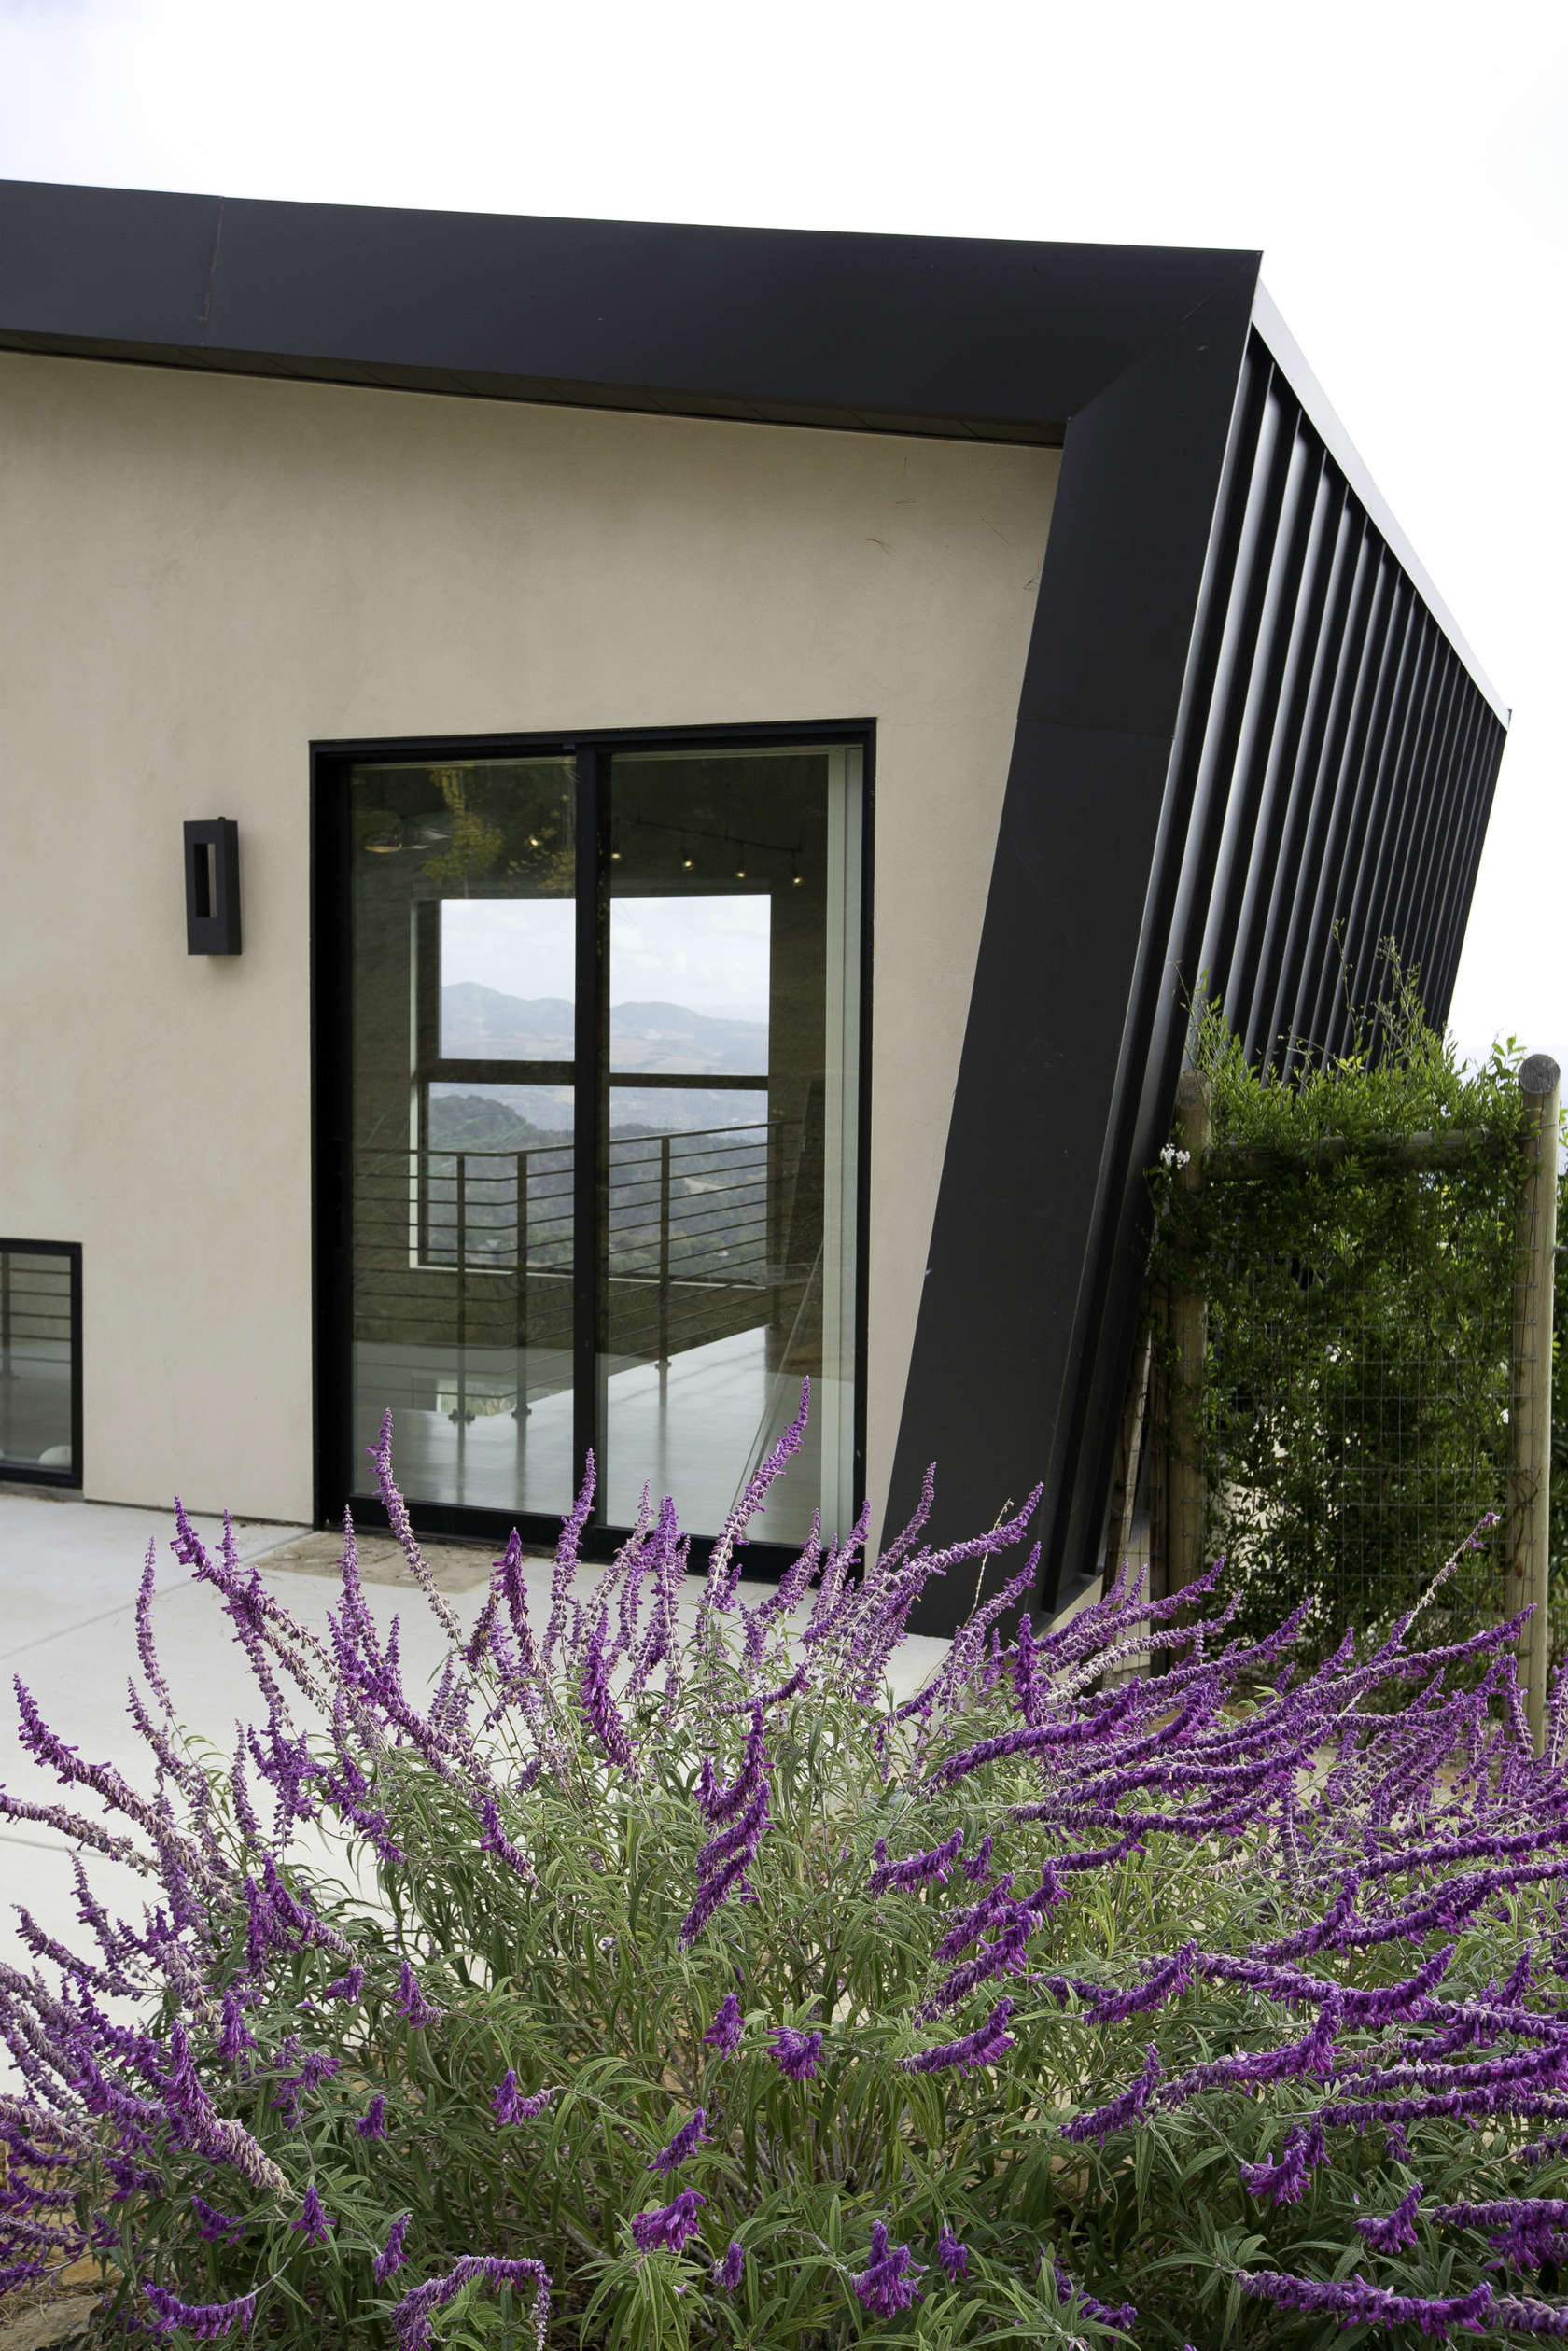 Unique Exterior - Custom home in sonoma gives a modern twist to wine country